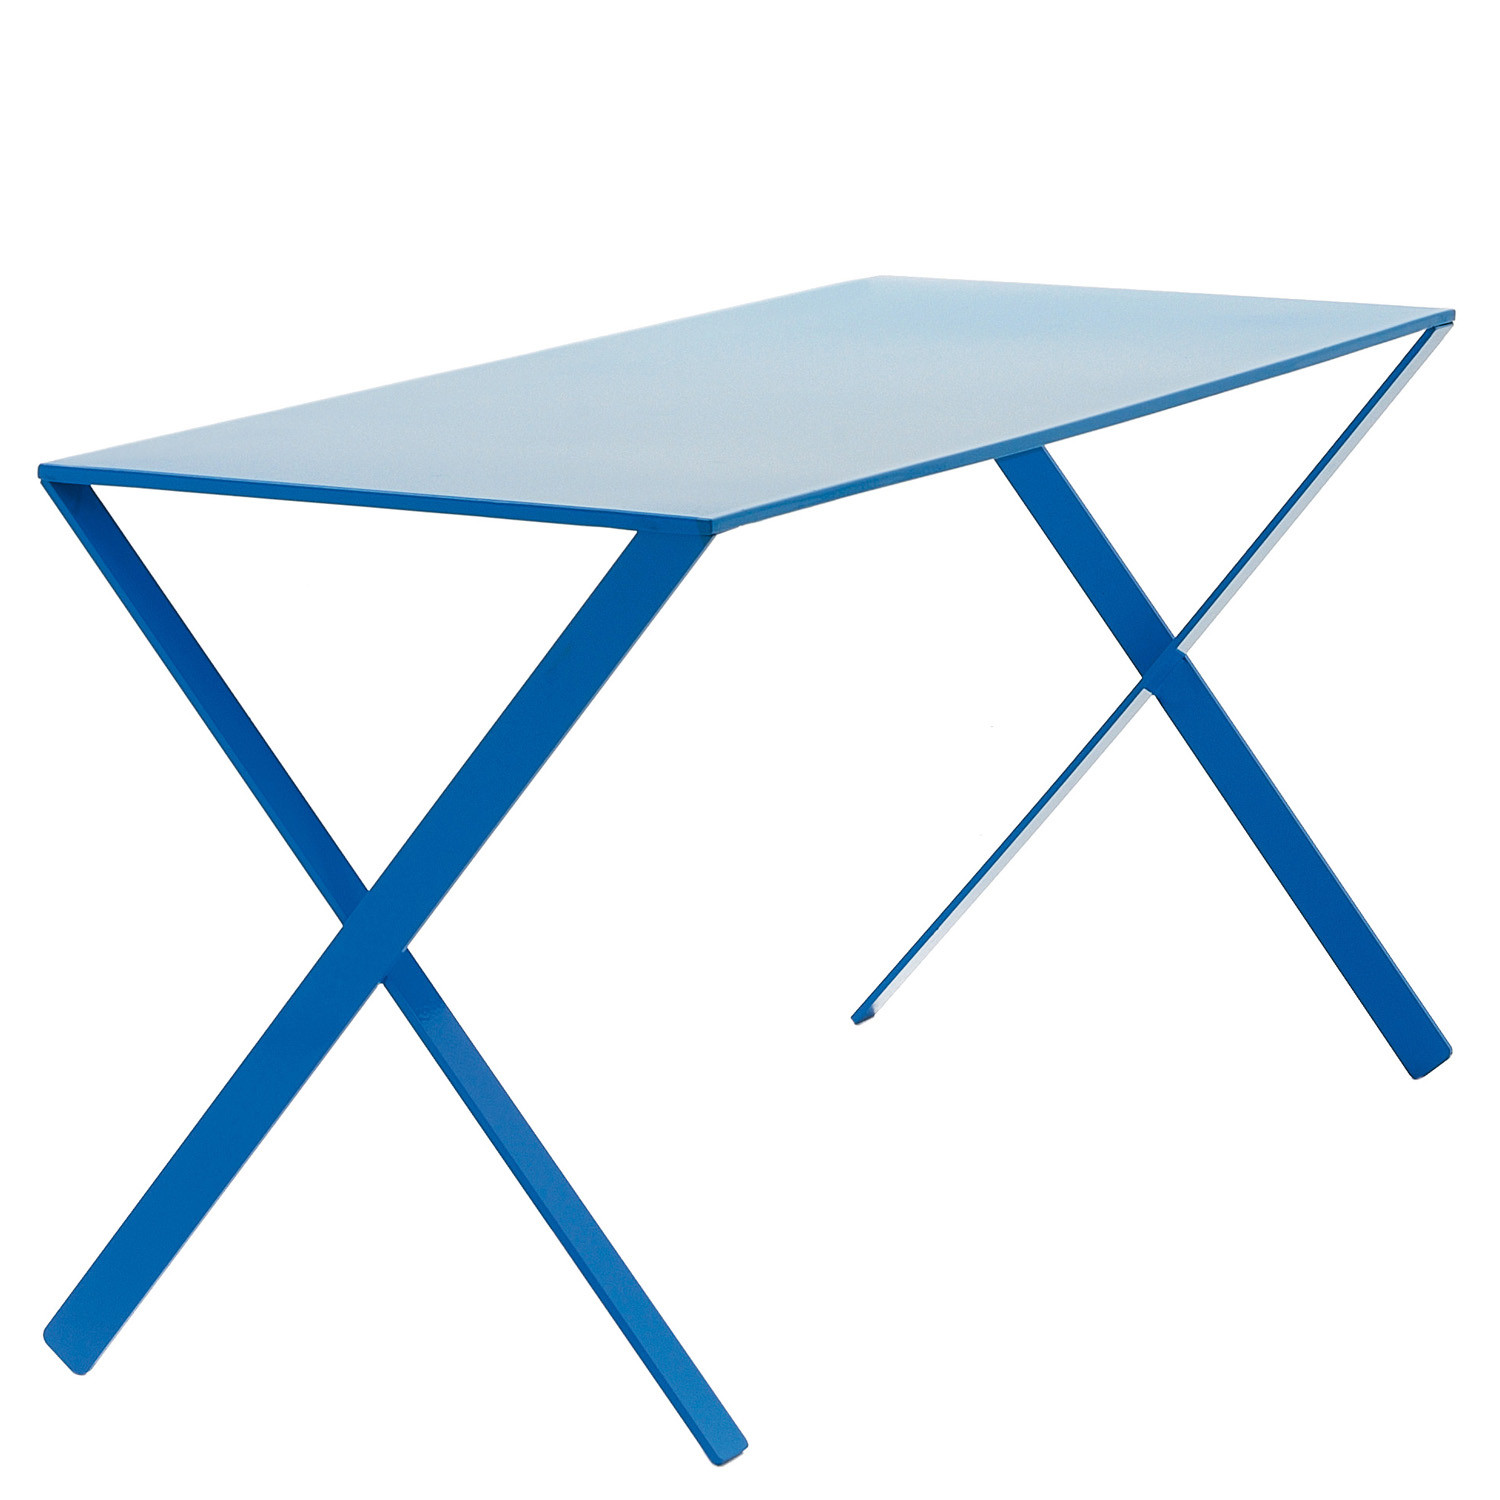 Bambi Desk by Cappellini